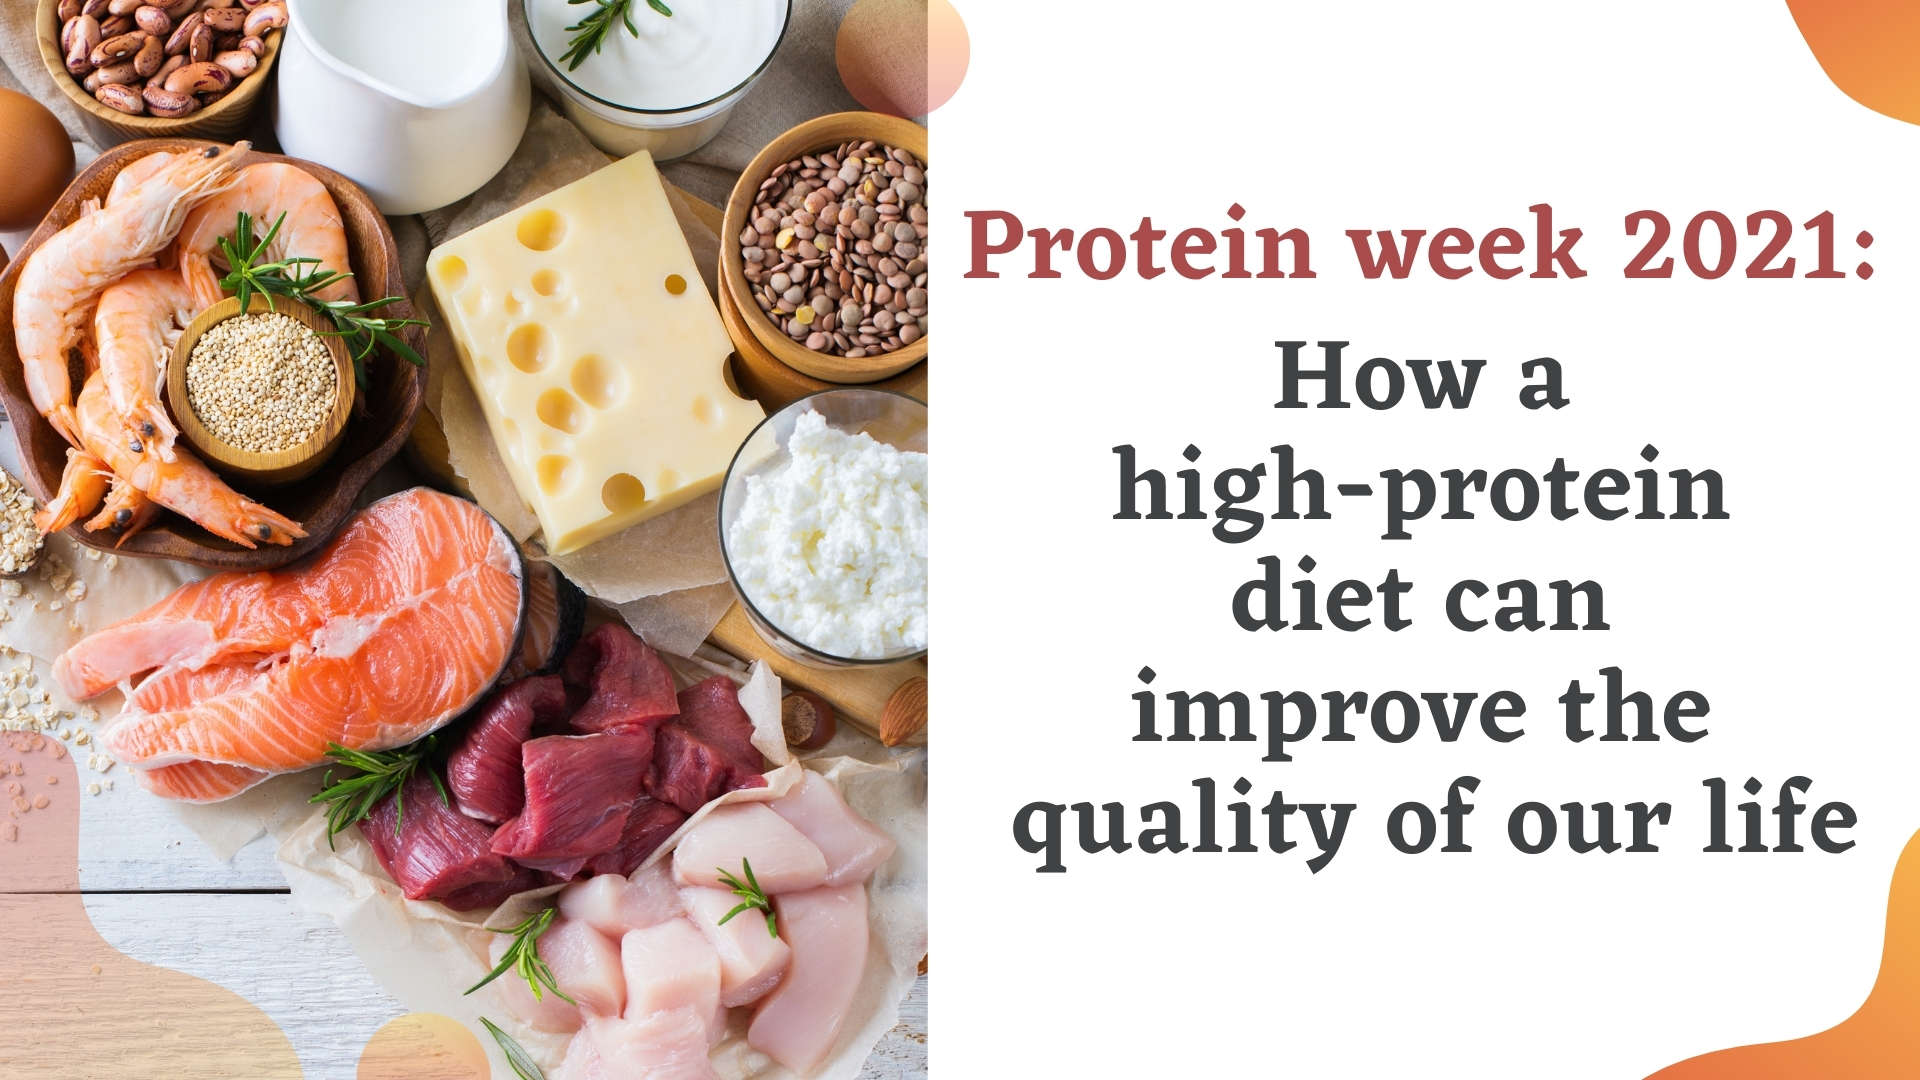 protein-week-2021-how-a-high-protein-diet-can-improve-the-quality-of-our-life